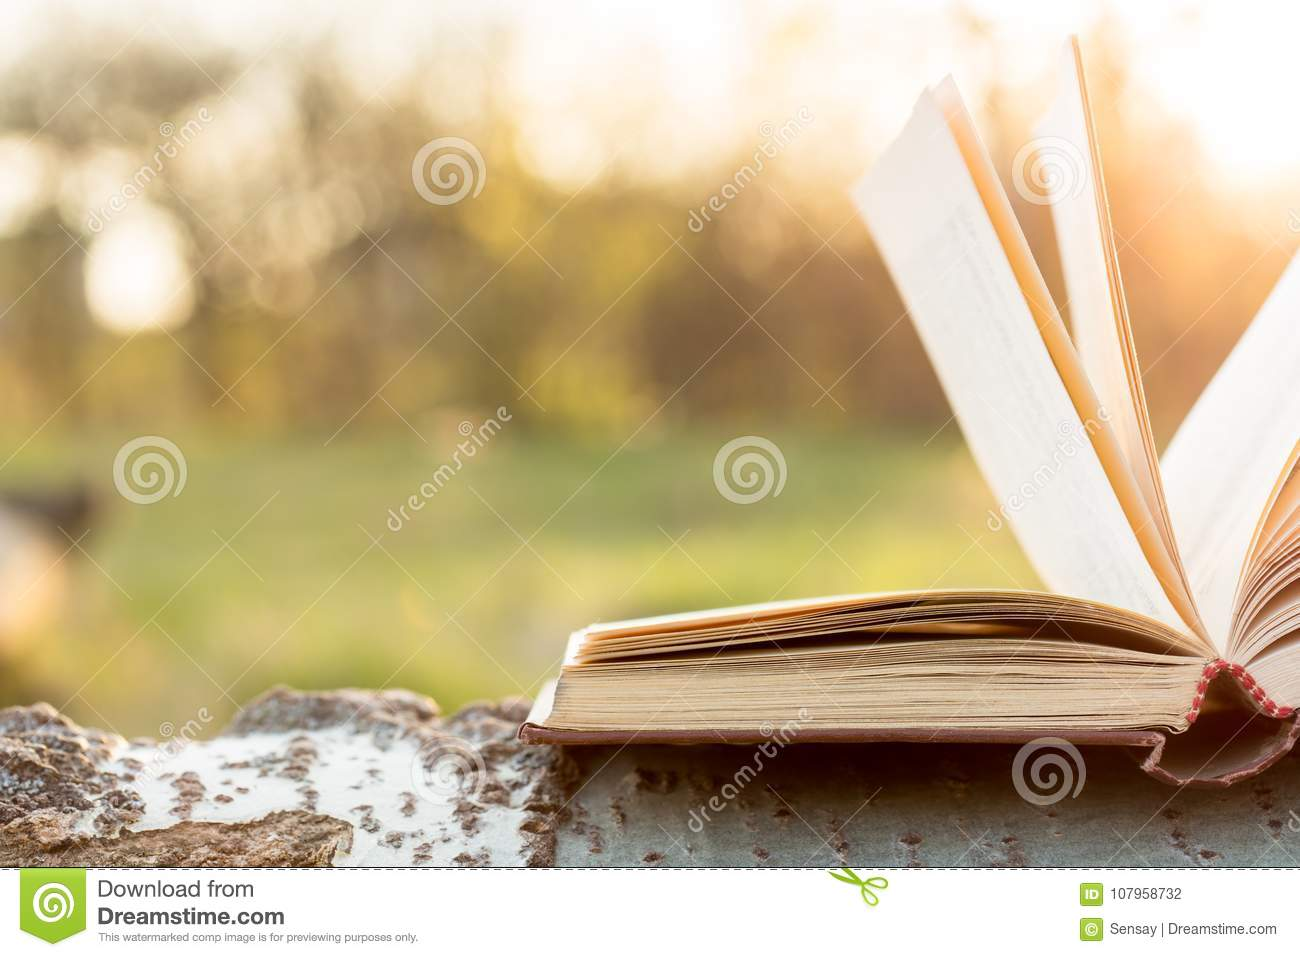 Education and wisdom concept - open book under sunlight